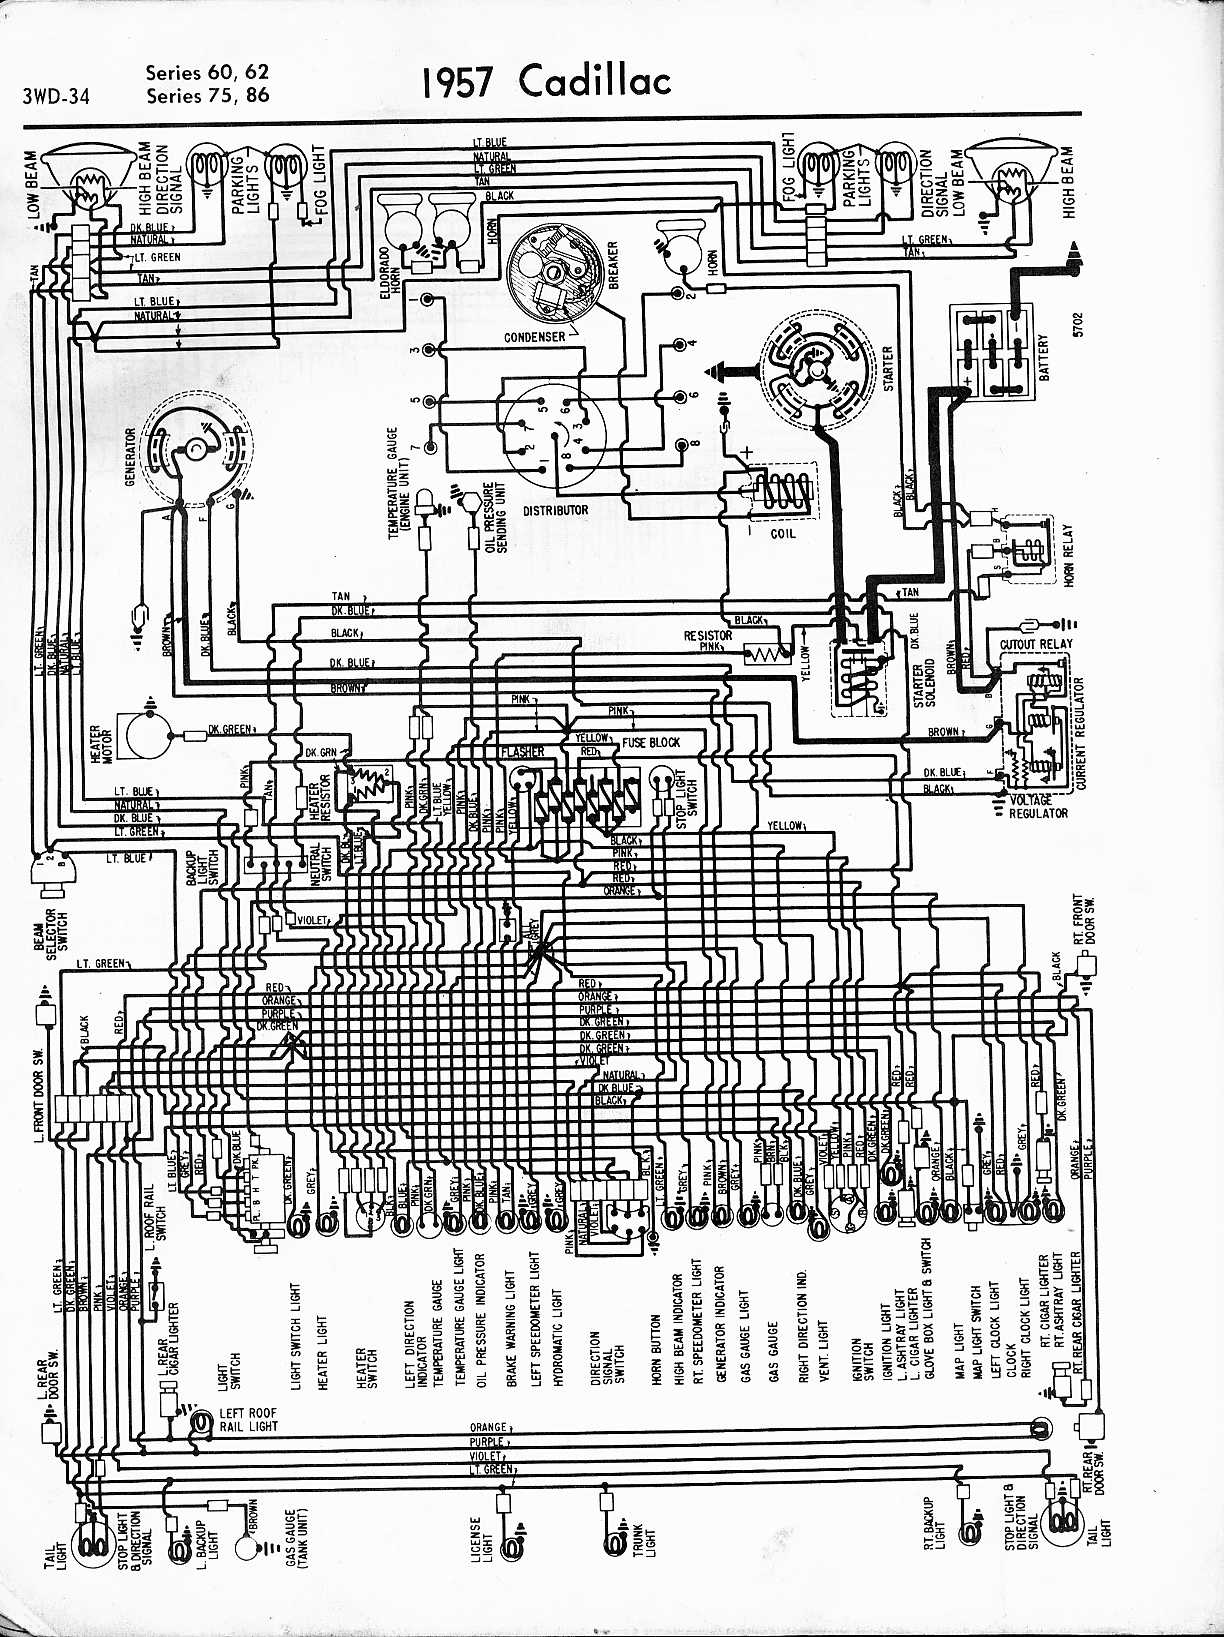 MWireCadi65_3WD 034 cadillac wiring diagram wiring diagram schematic name